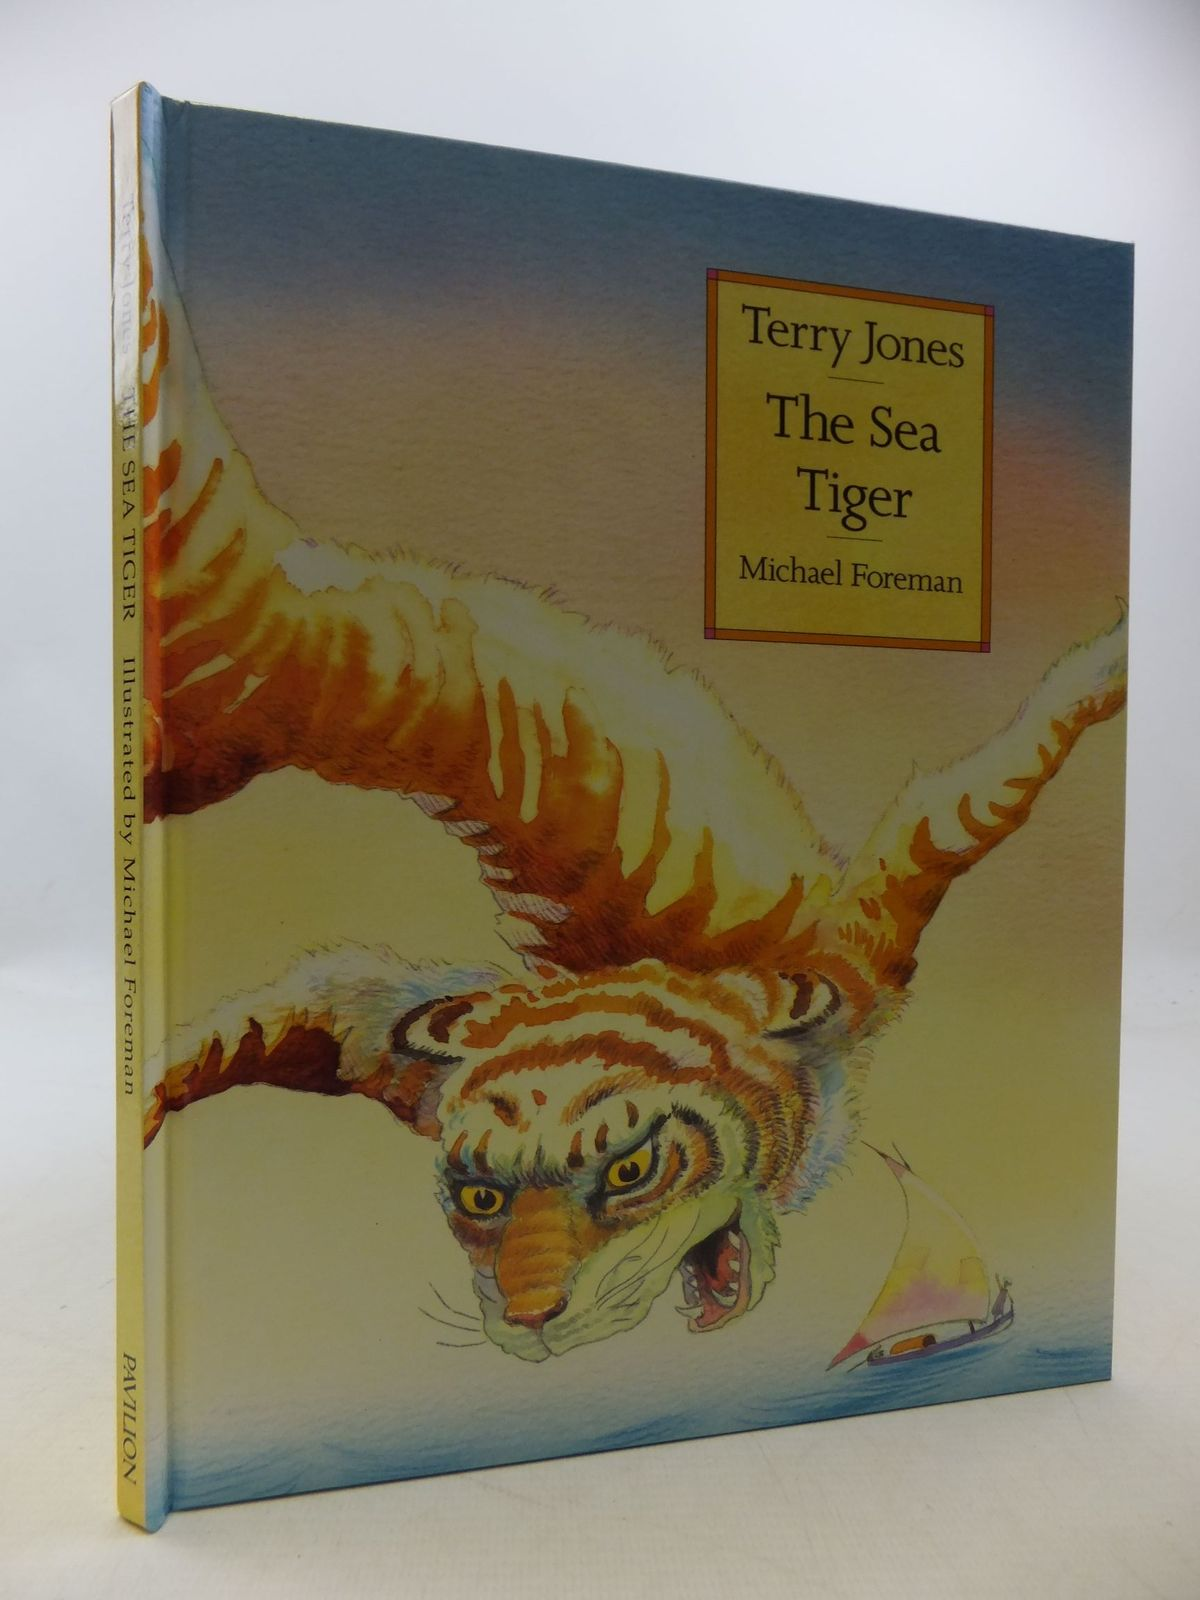 Photo of THE SEA TIGER written by Jones, Terry illustrated by Foreman, Michael published by Pavilion Books Ltd. (STOCK CODE: 1710256)  for sale by Stella & Rose's Books